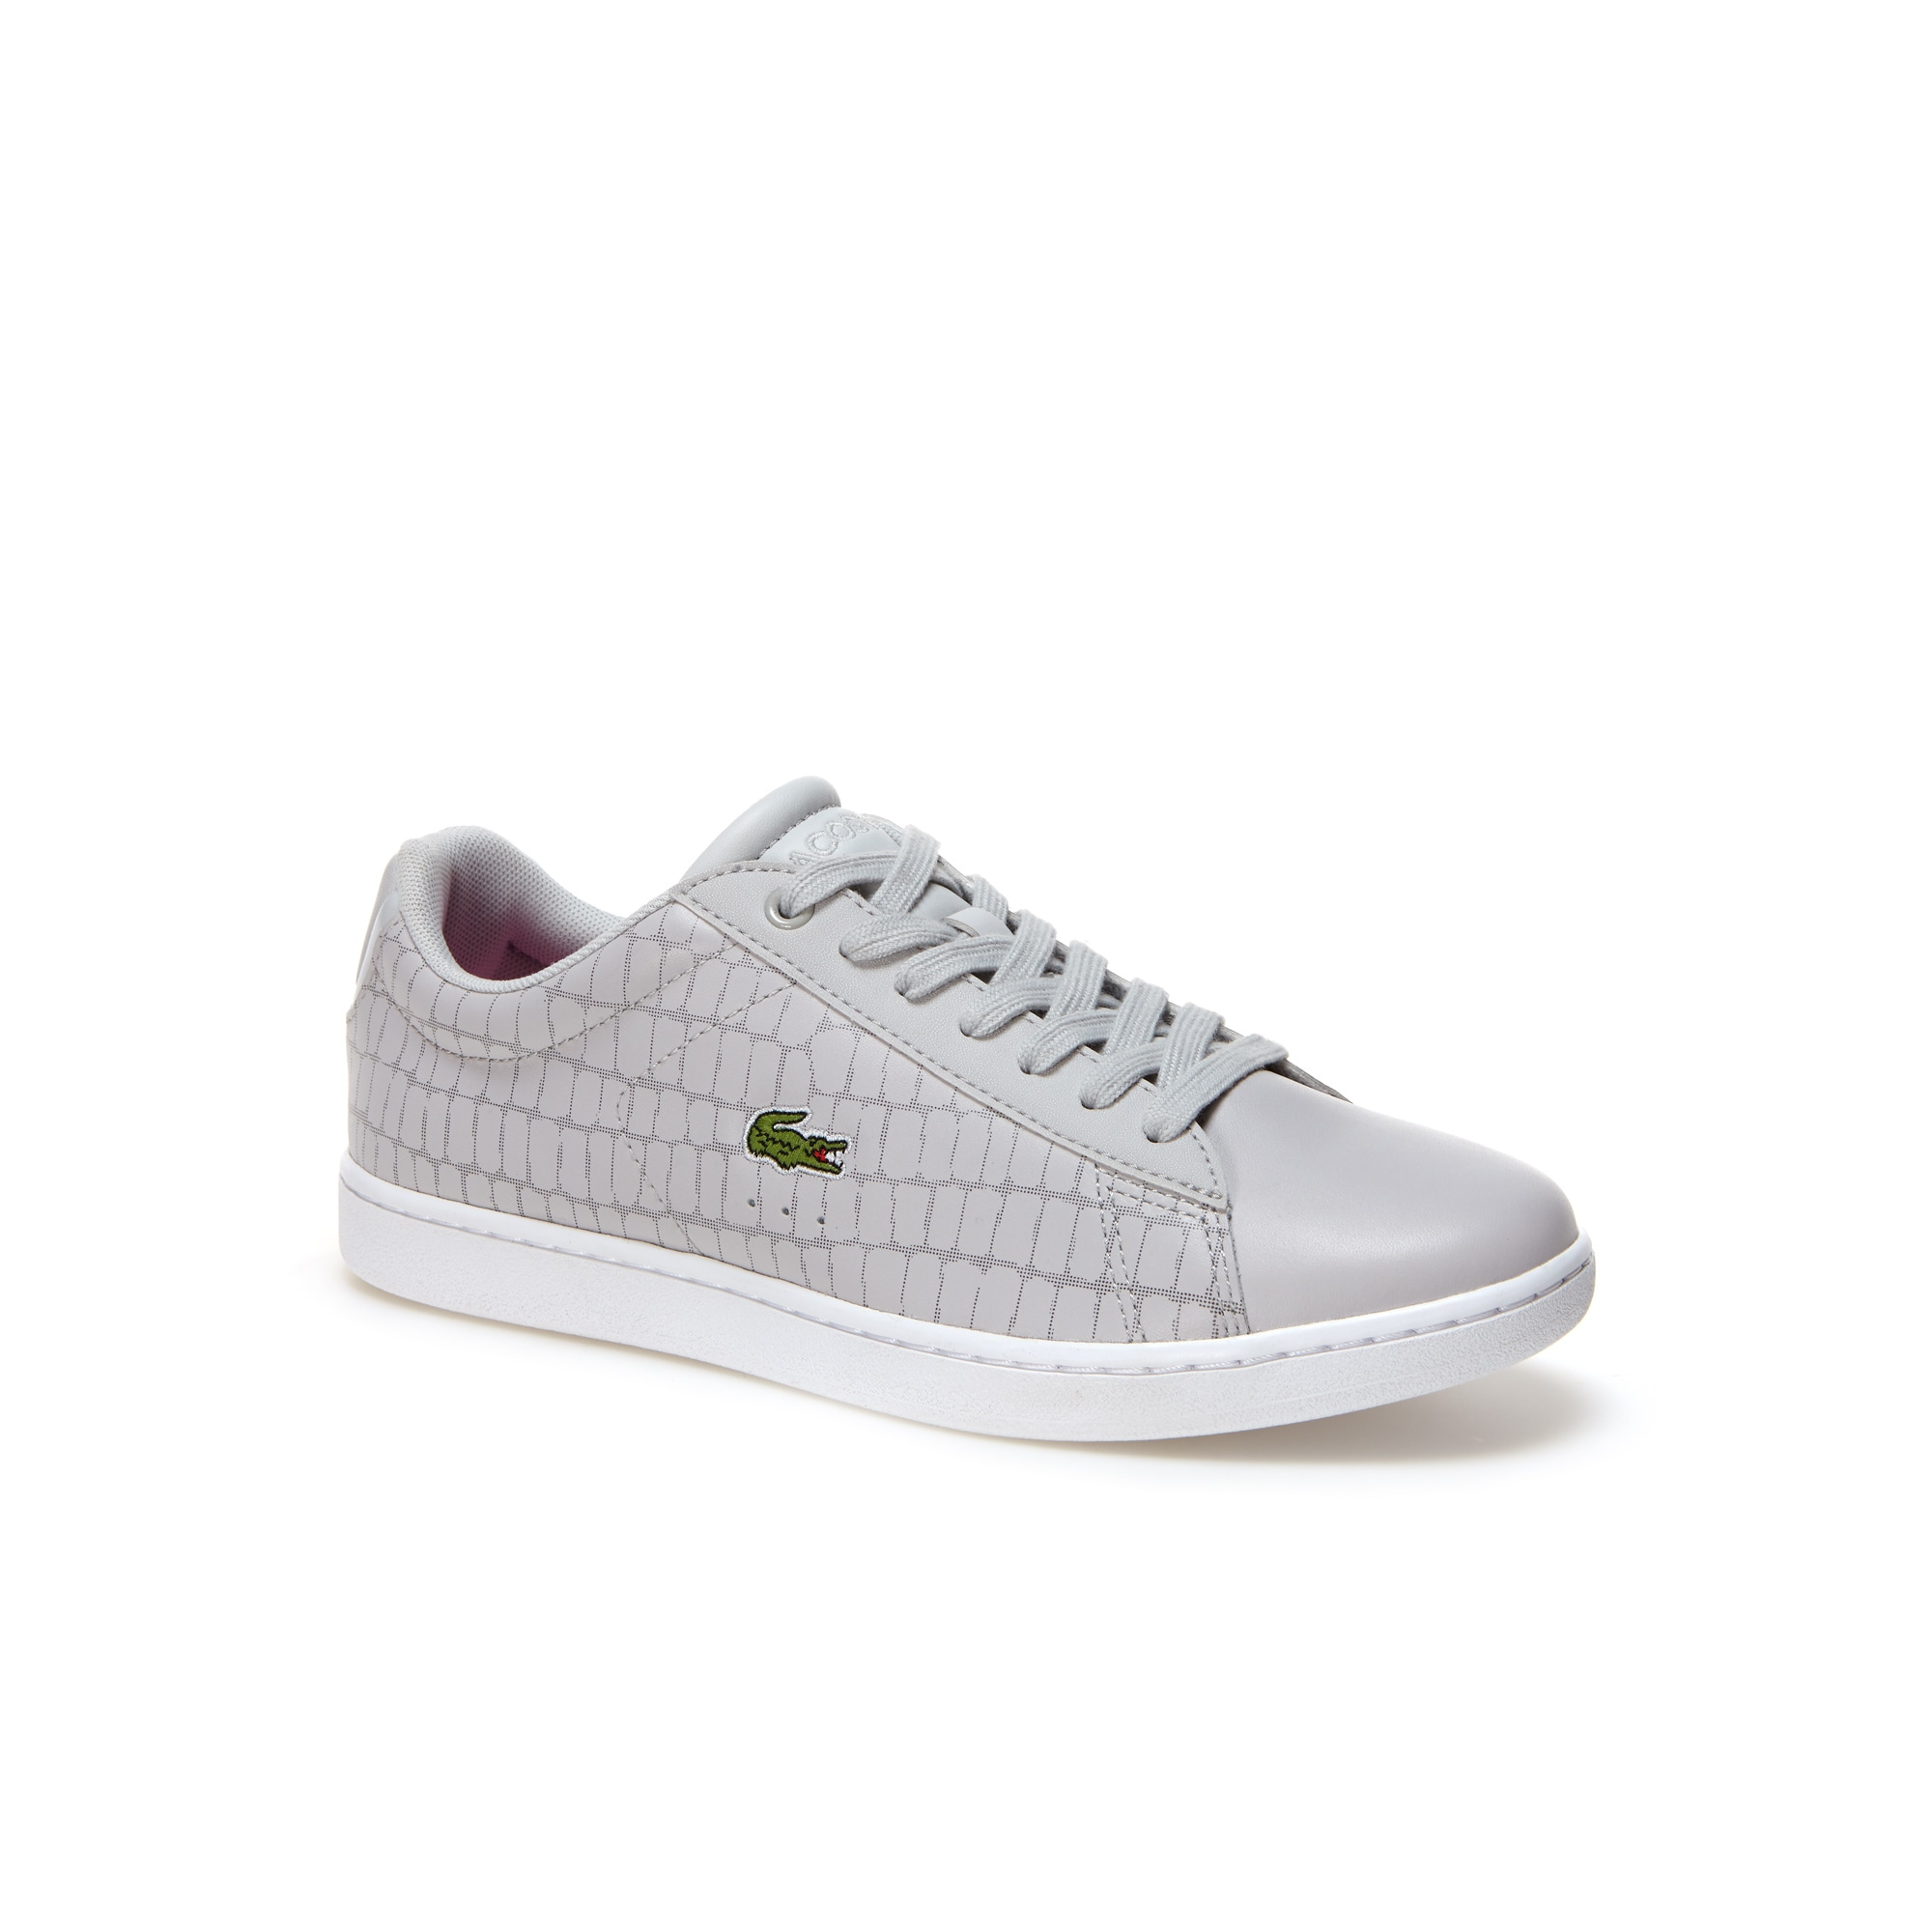 Sneakers Carnaby Evo in pelle con stampa grafica